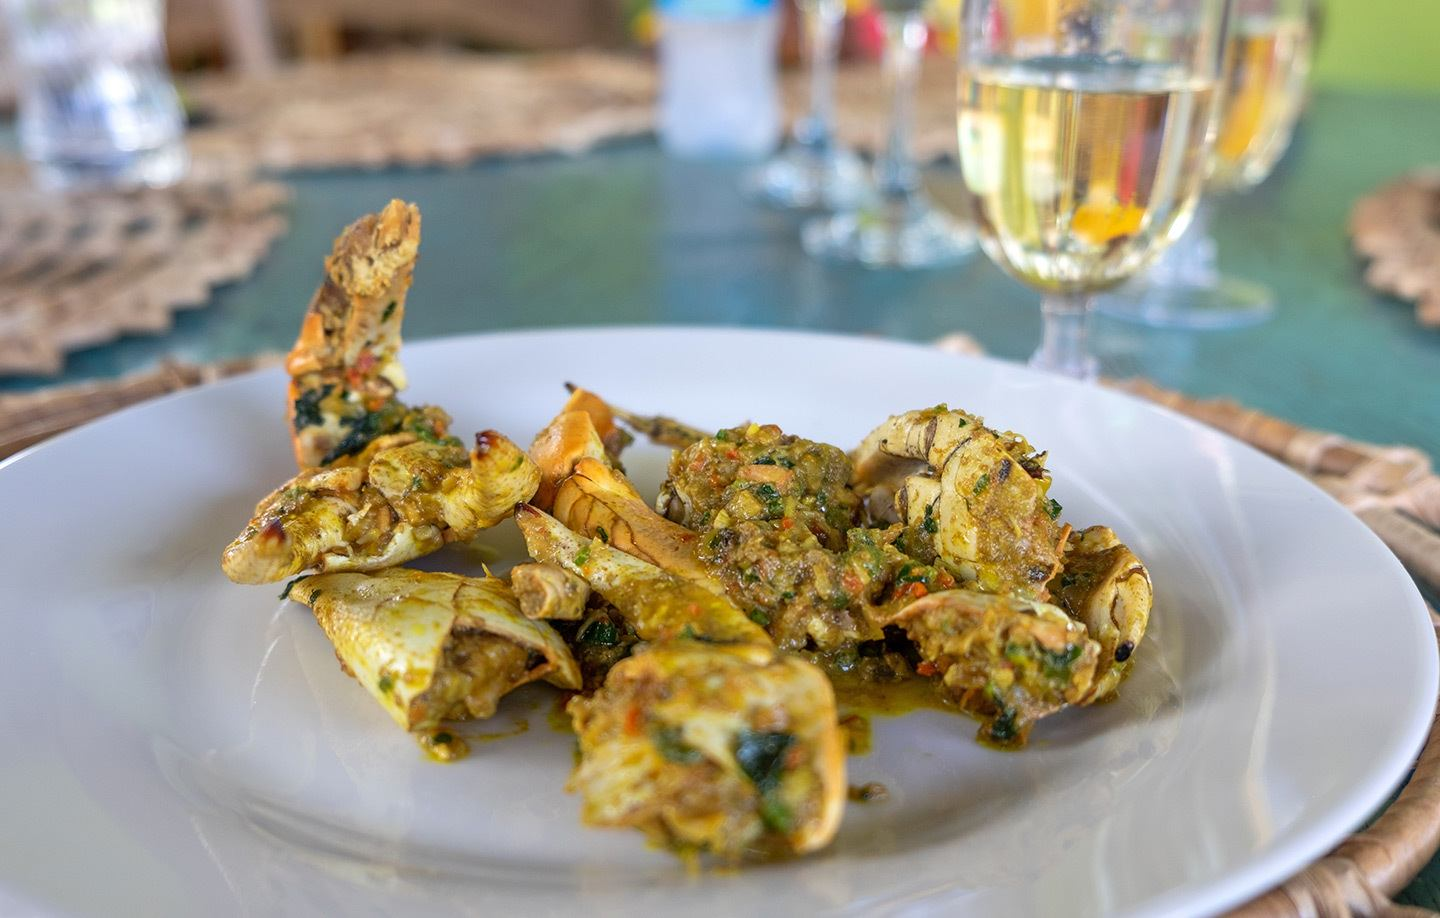 Crab claws, Creole cookery in Saint Lucia